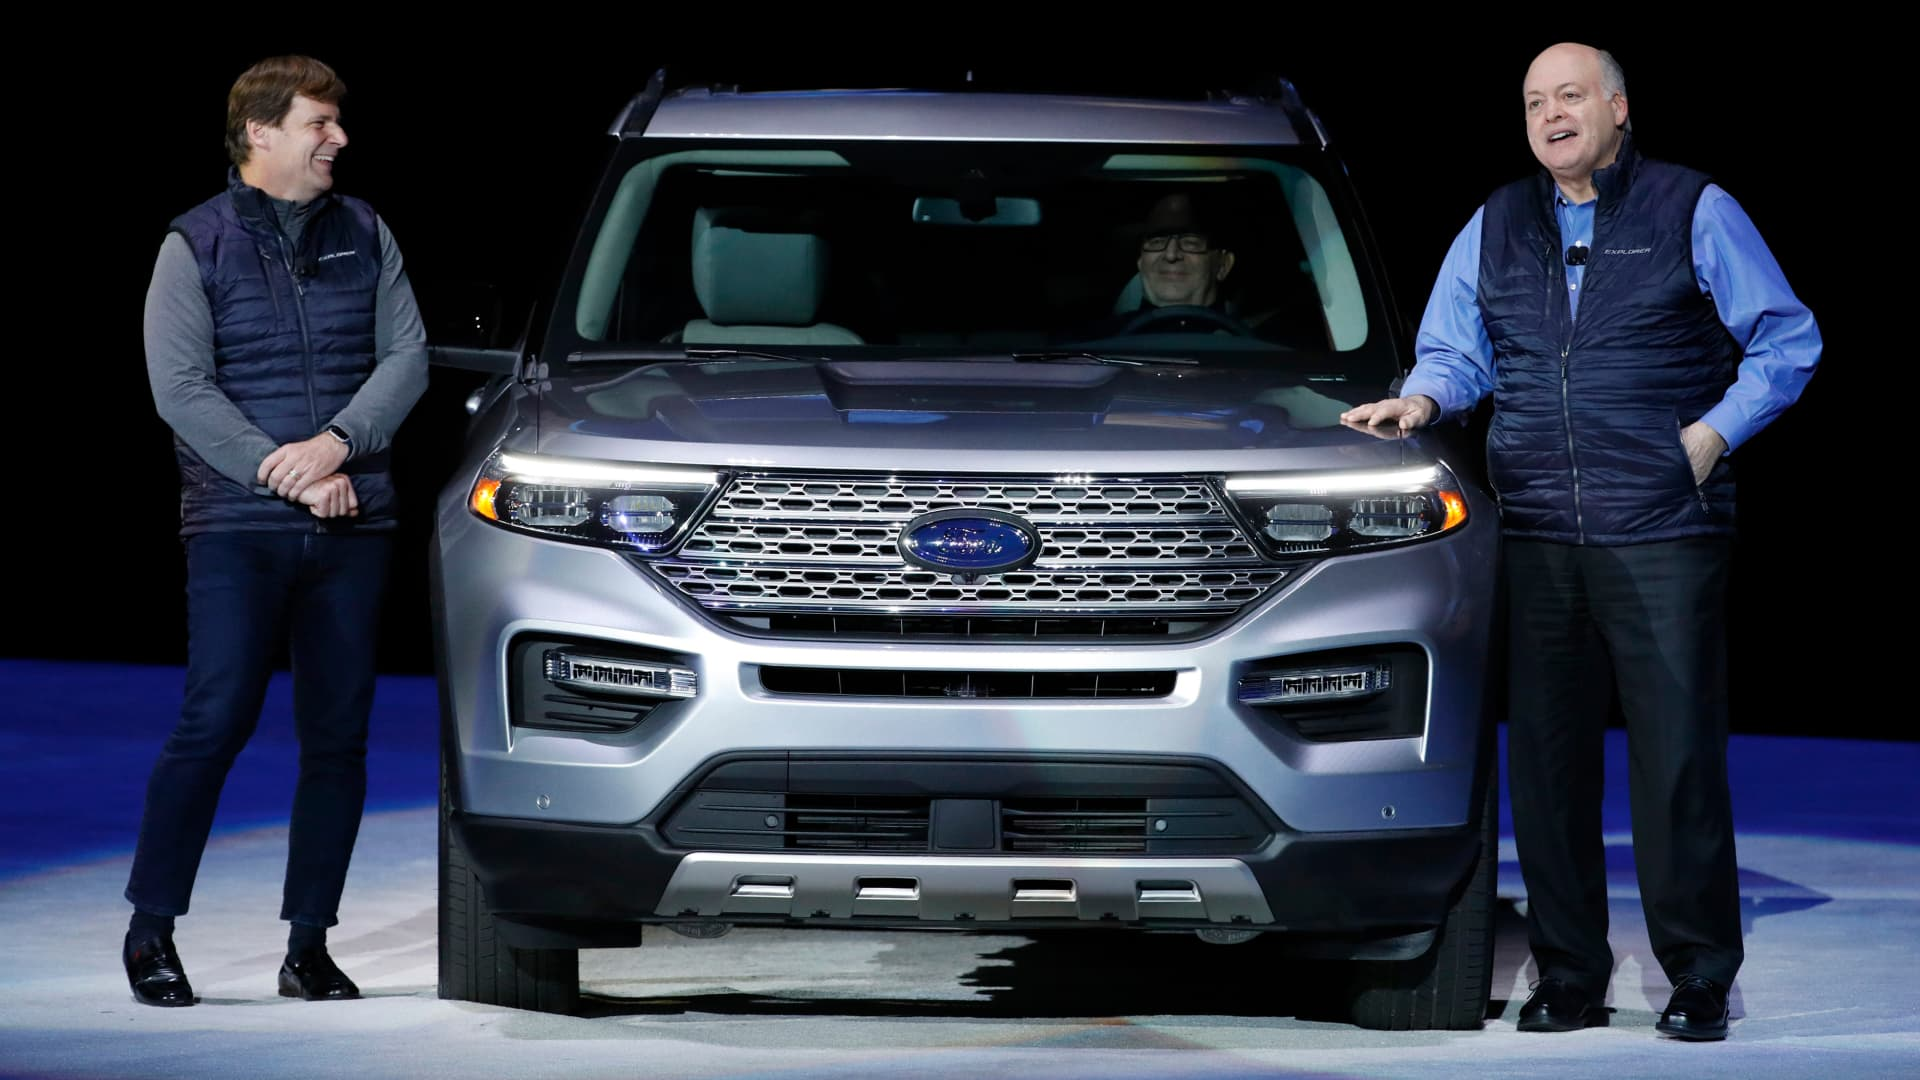 Jim Hackett, president and chief executive officer of Ford Motor Co., right, speaks as Jim Farley, president of global markets, stands next to a 2020 Ford Motor Co. Explorer sport utility vehicle (SUV) during a reveal event in Detroit, Michigan, U.S., on Wednesday, Jan. 9, 2019.